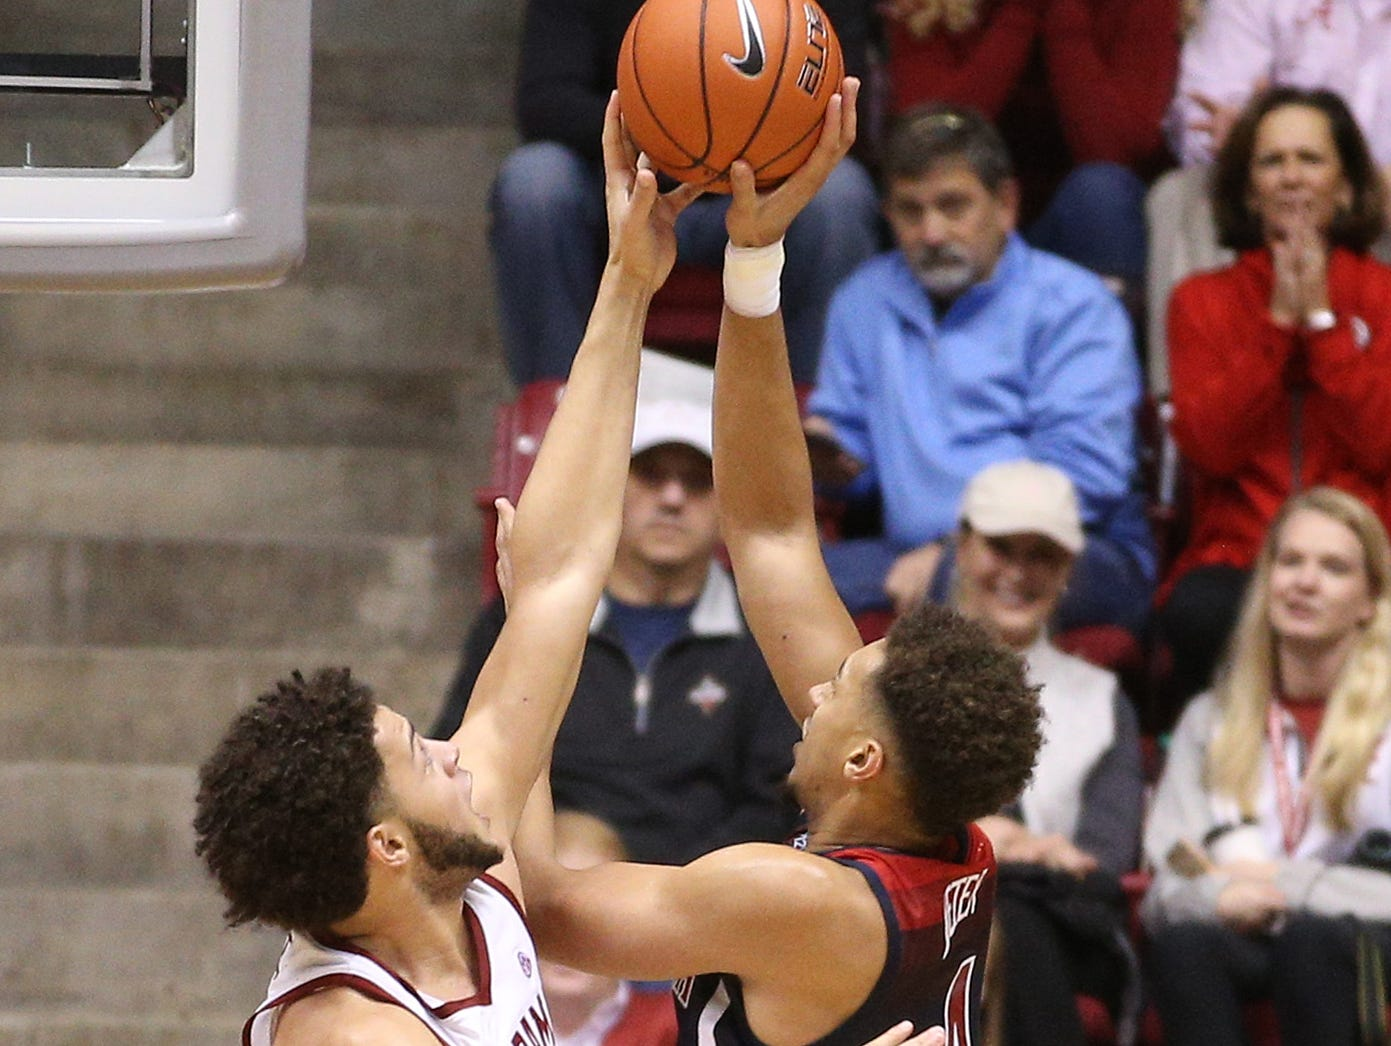 Dec 9, 2018; Tuscaloosa, AL, USA; Alabama Crimson Tide forward Alex Reese (3) blocks a shot by Arizona Wildcats center Chase Jeter (4) during the second half at Coleman Coliseum. Mandatory Credit: Marvin Gentry-USA TODAY Sports